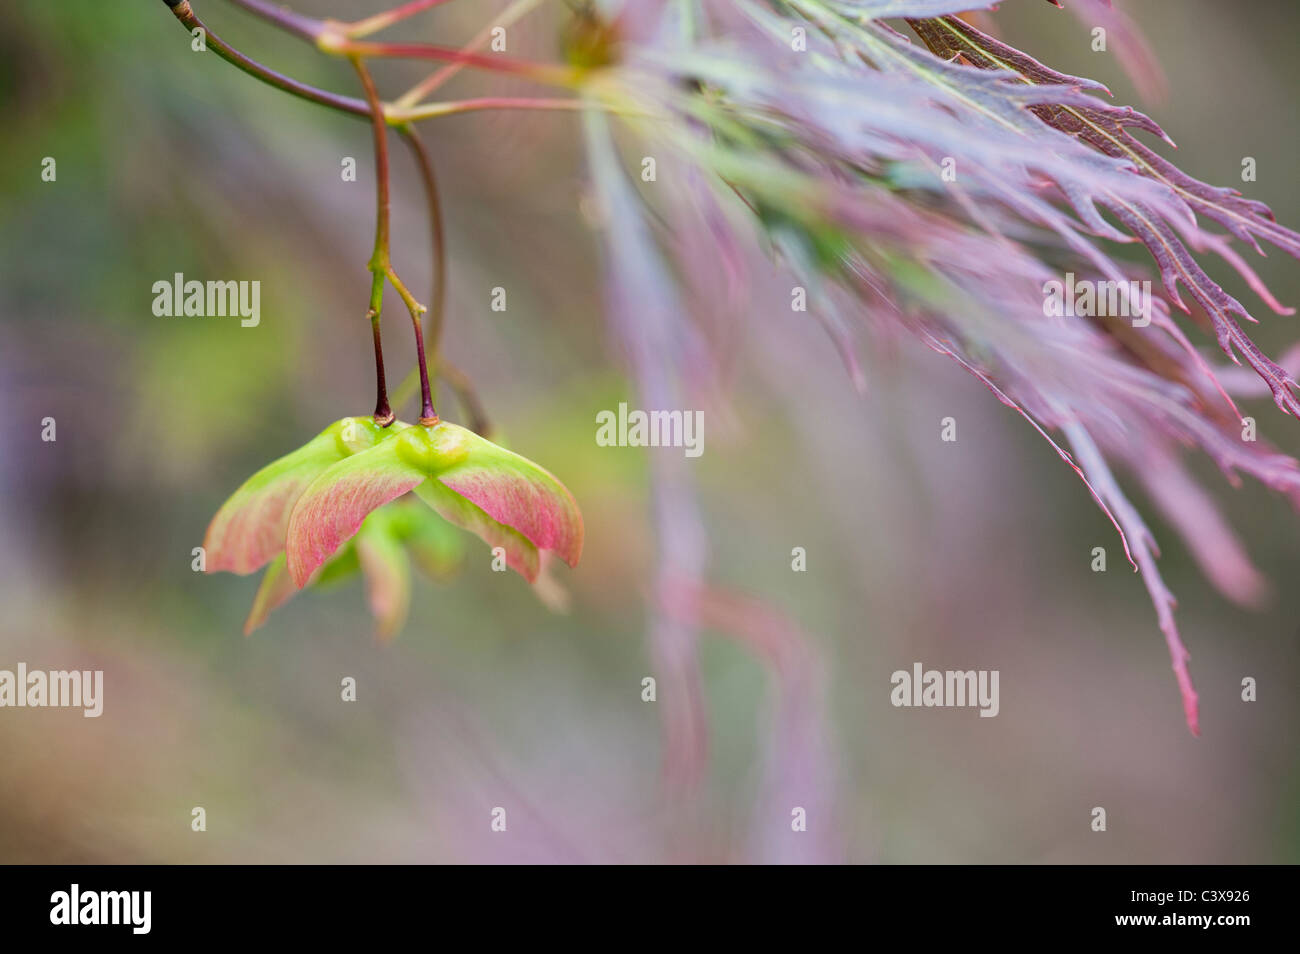 Acer palmatum var. Dissectum. Smooth Japanese maple tree leaves and seed pods - Stock Image